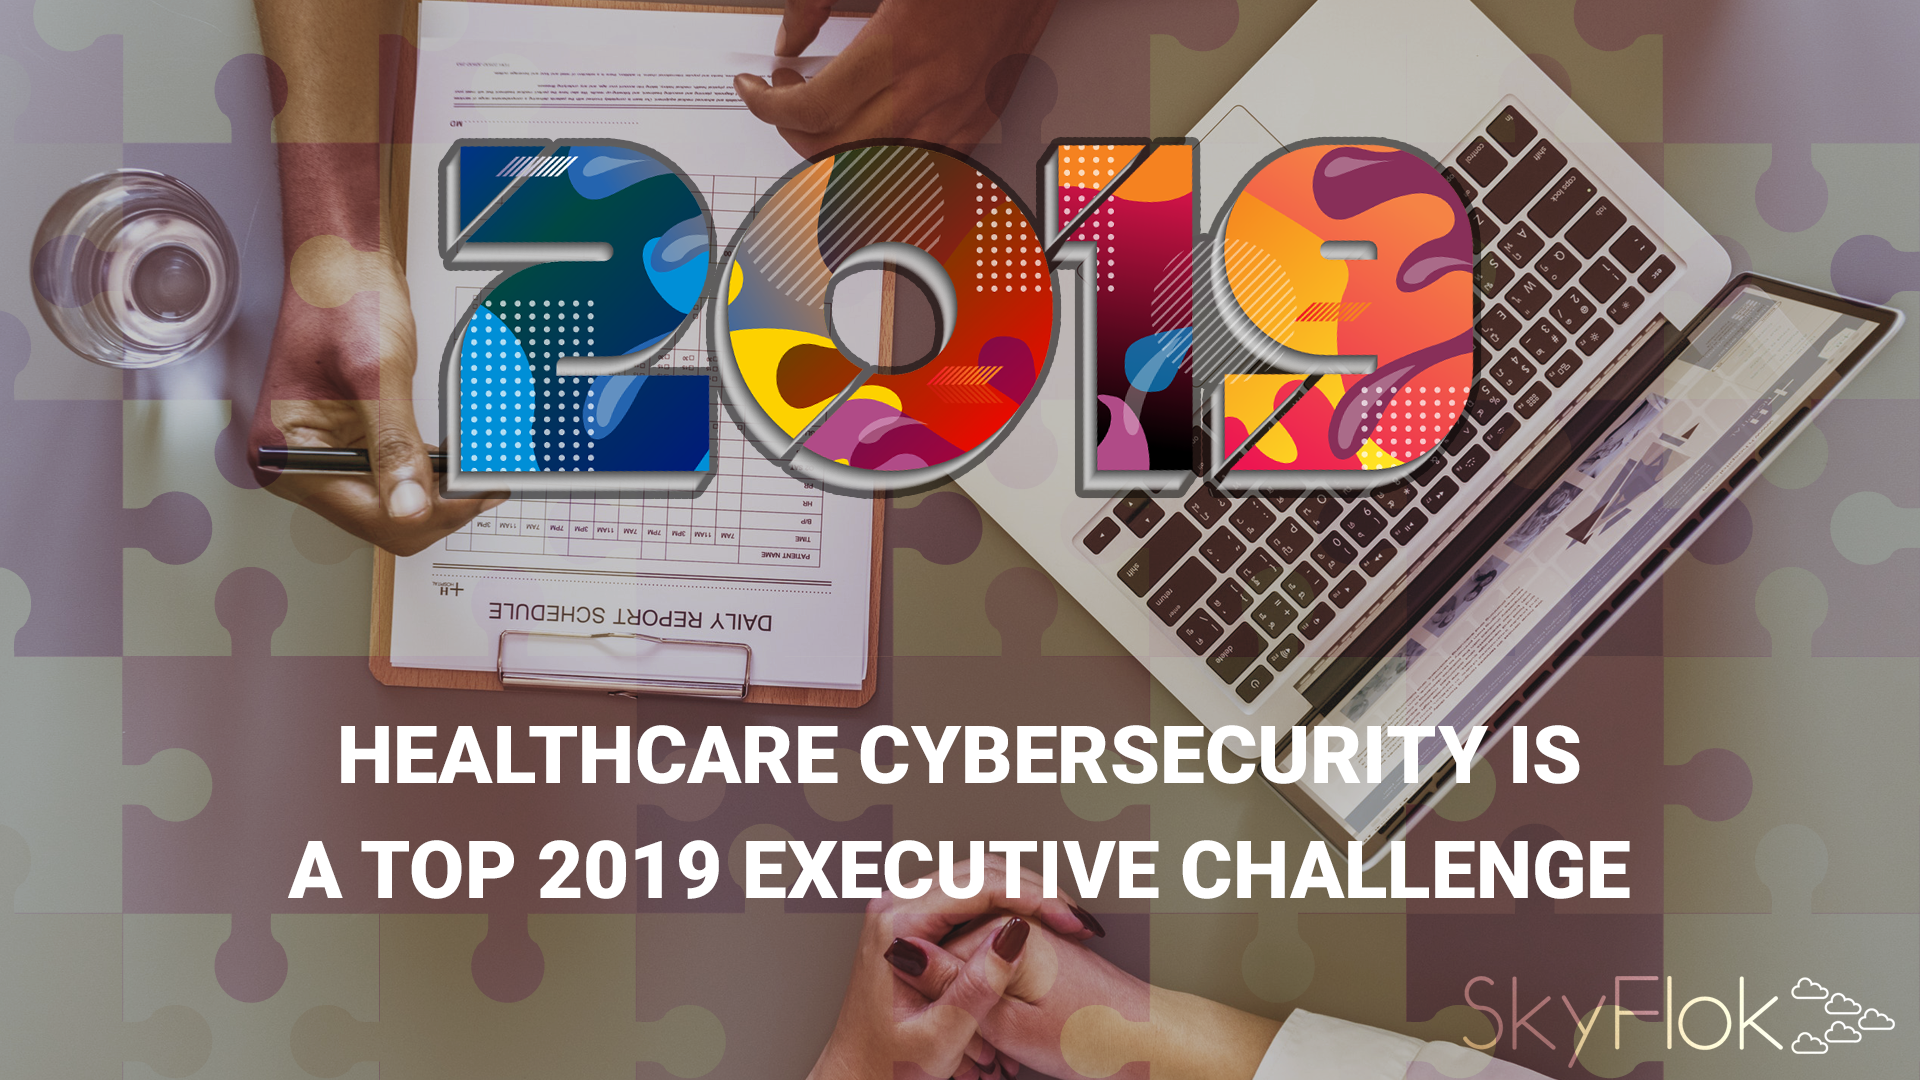 Healthcare Cybersecurity Is a Top 2019 Executive Challenge